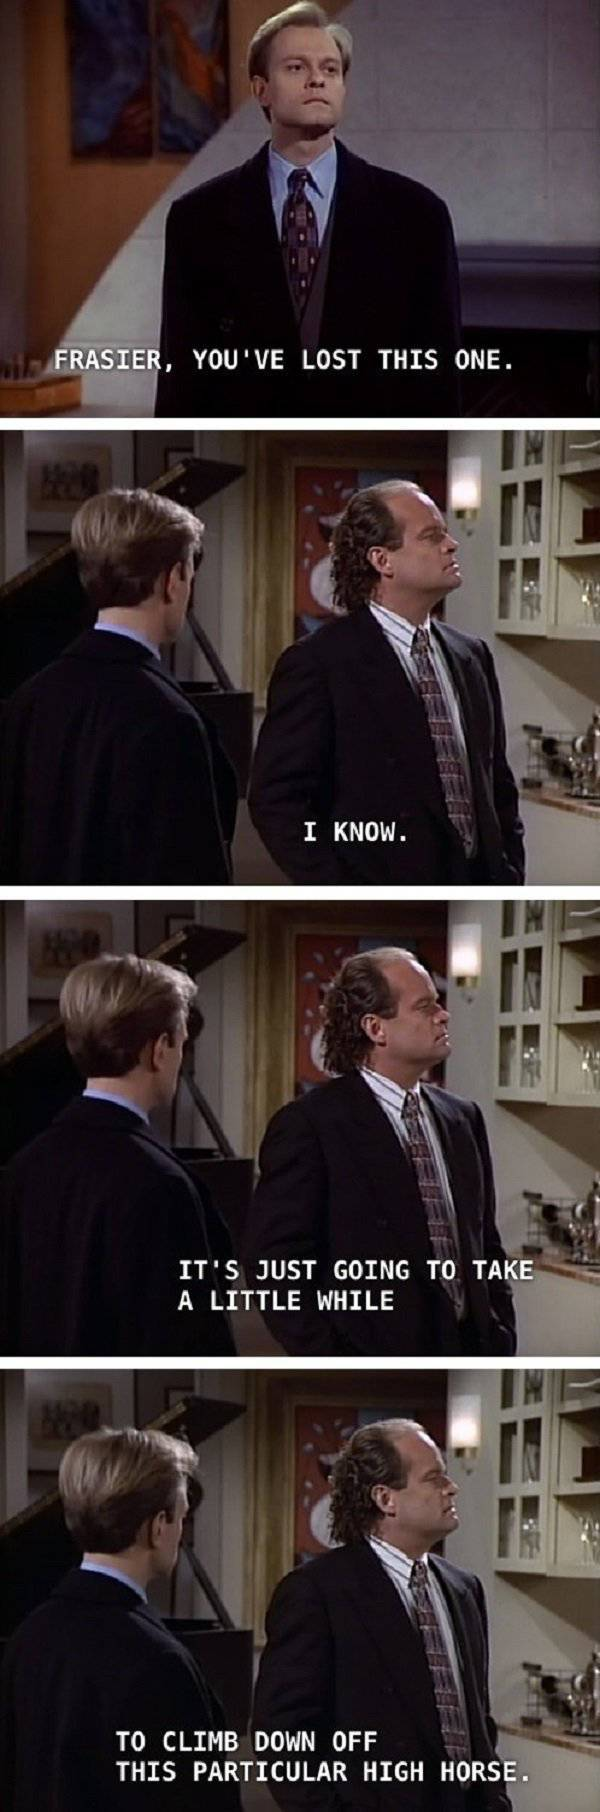 Frasier Quotes That Will Keep You Laughing For A While (23 pics)